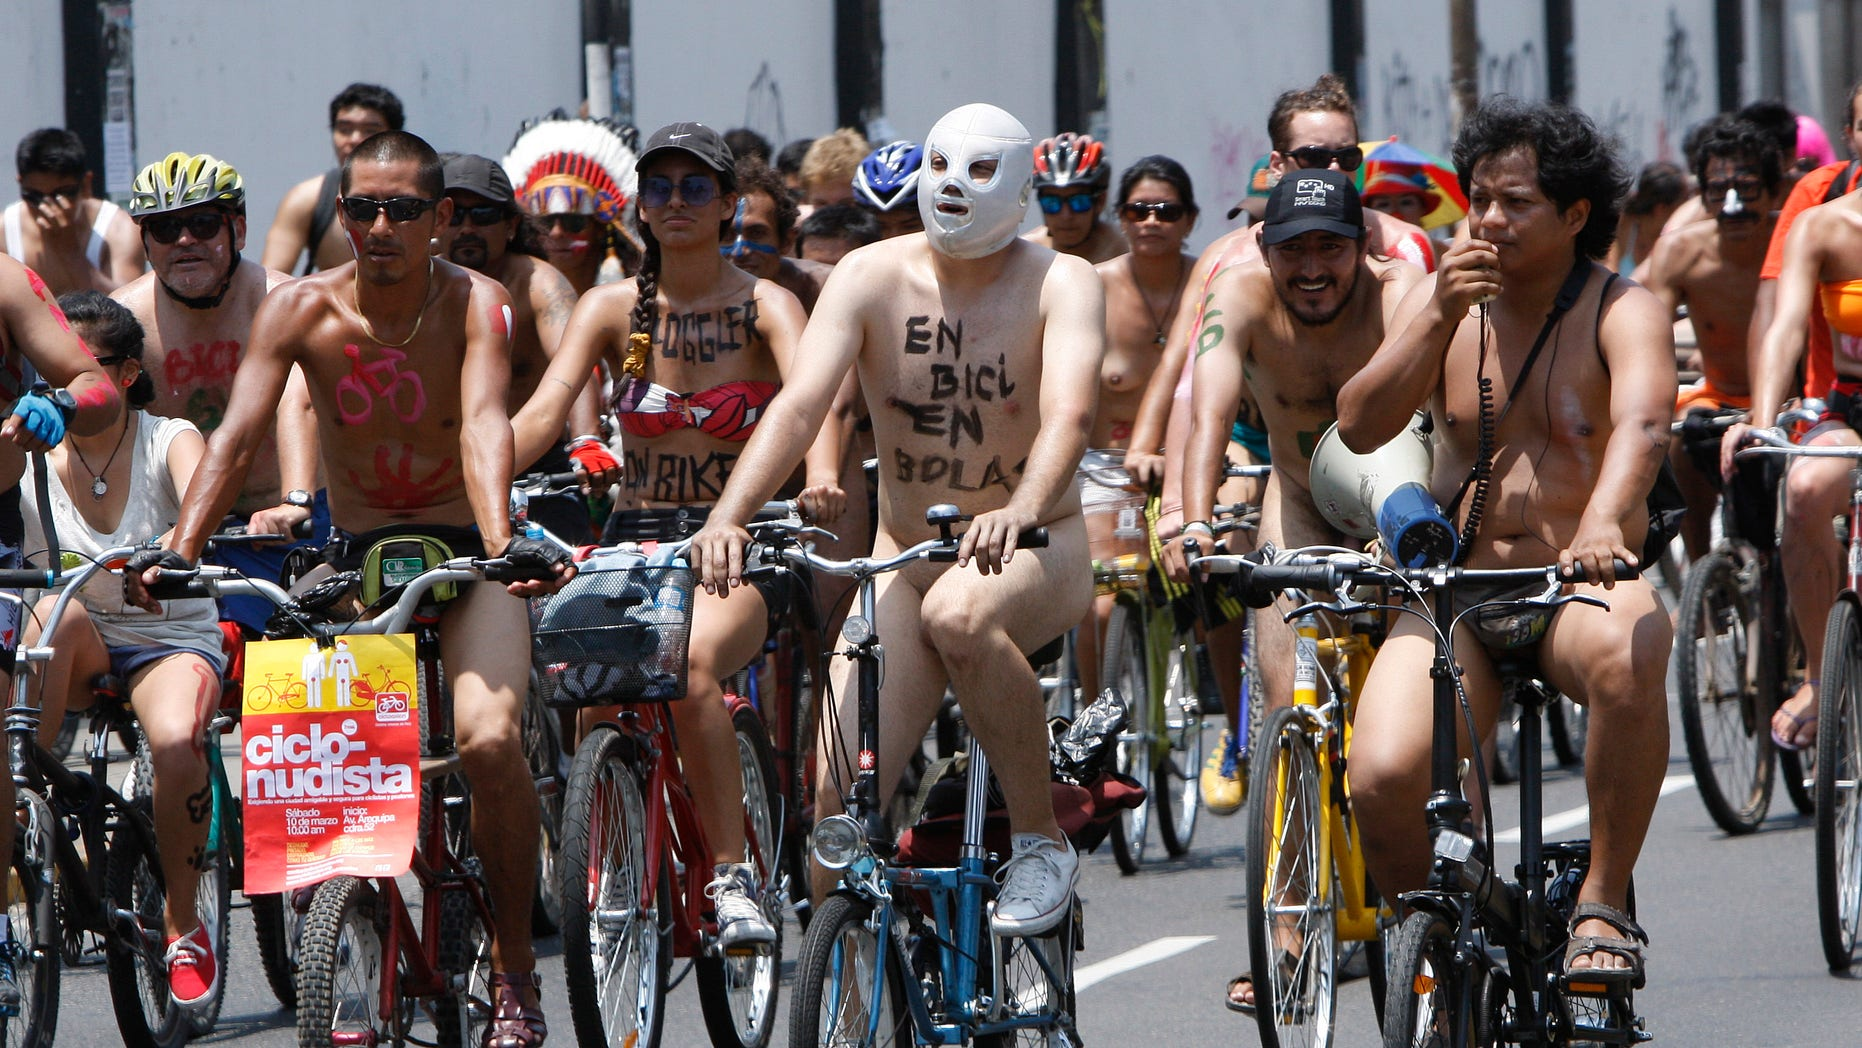 Mar. 10, 2012: Hundreds of nude and semi-nude cyclists demanding that authorities stop the hostilities bicyclists face from motorists, pedal through a main avenue in Lima, Peru.